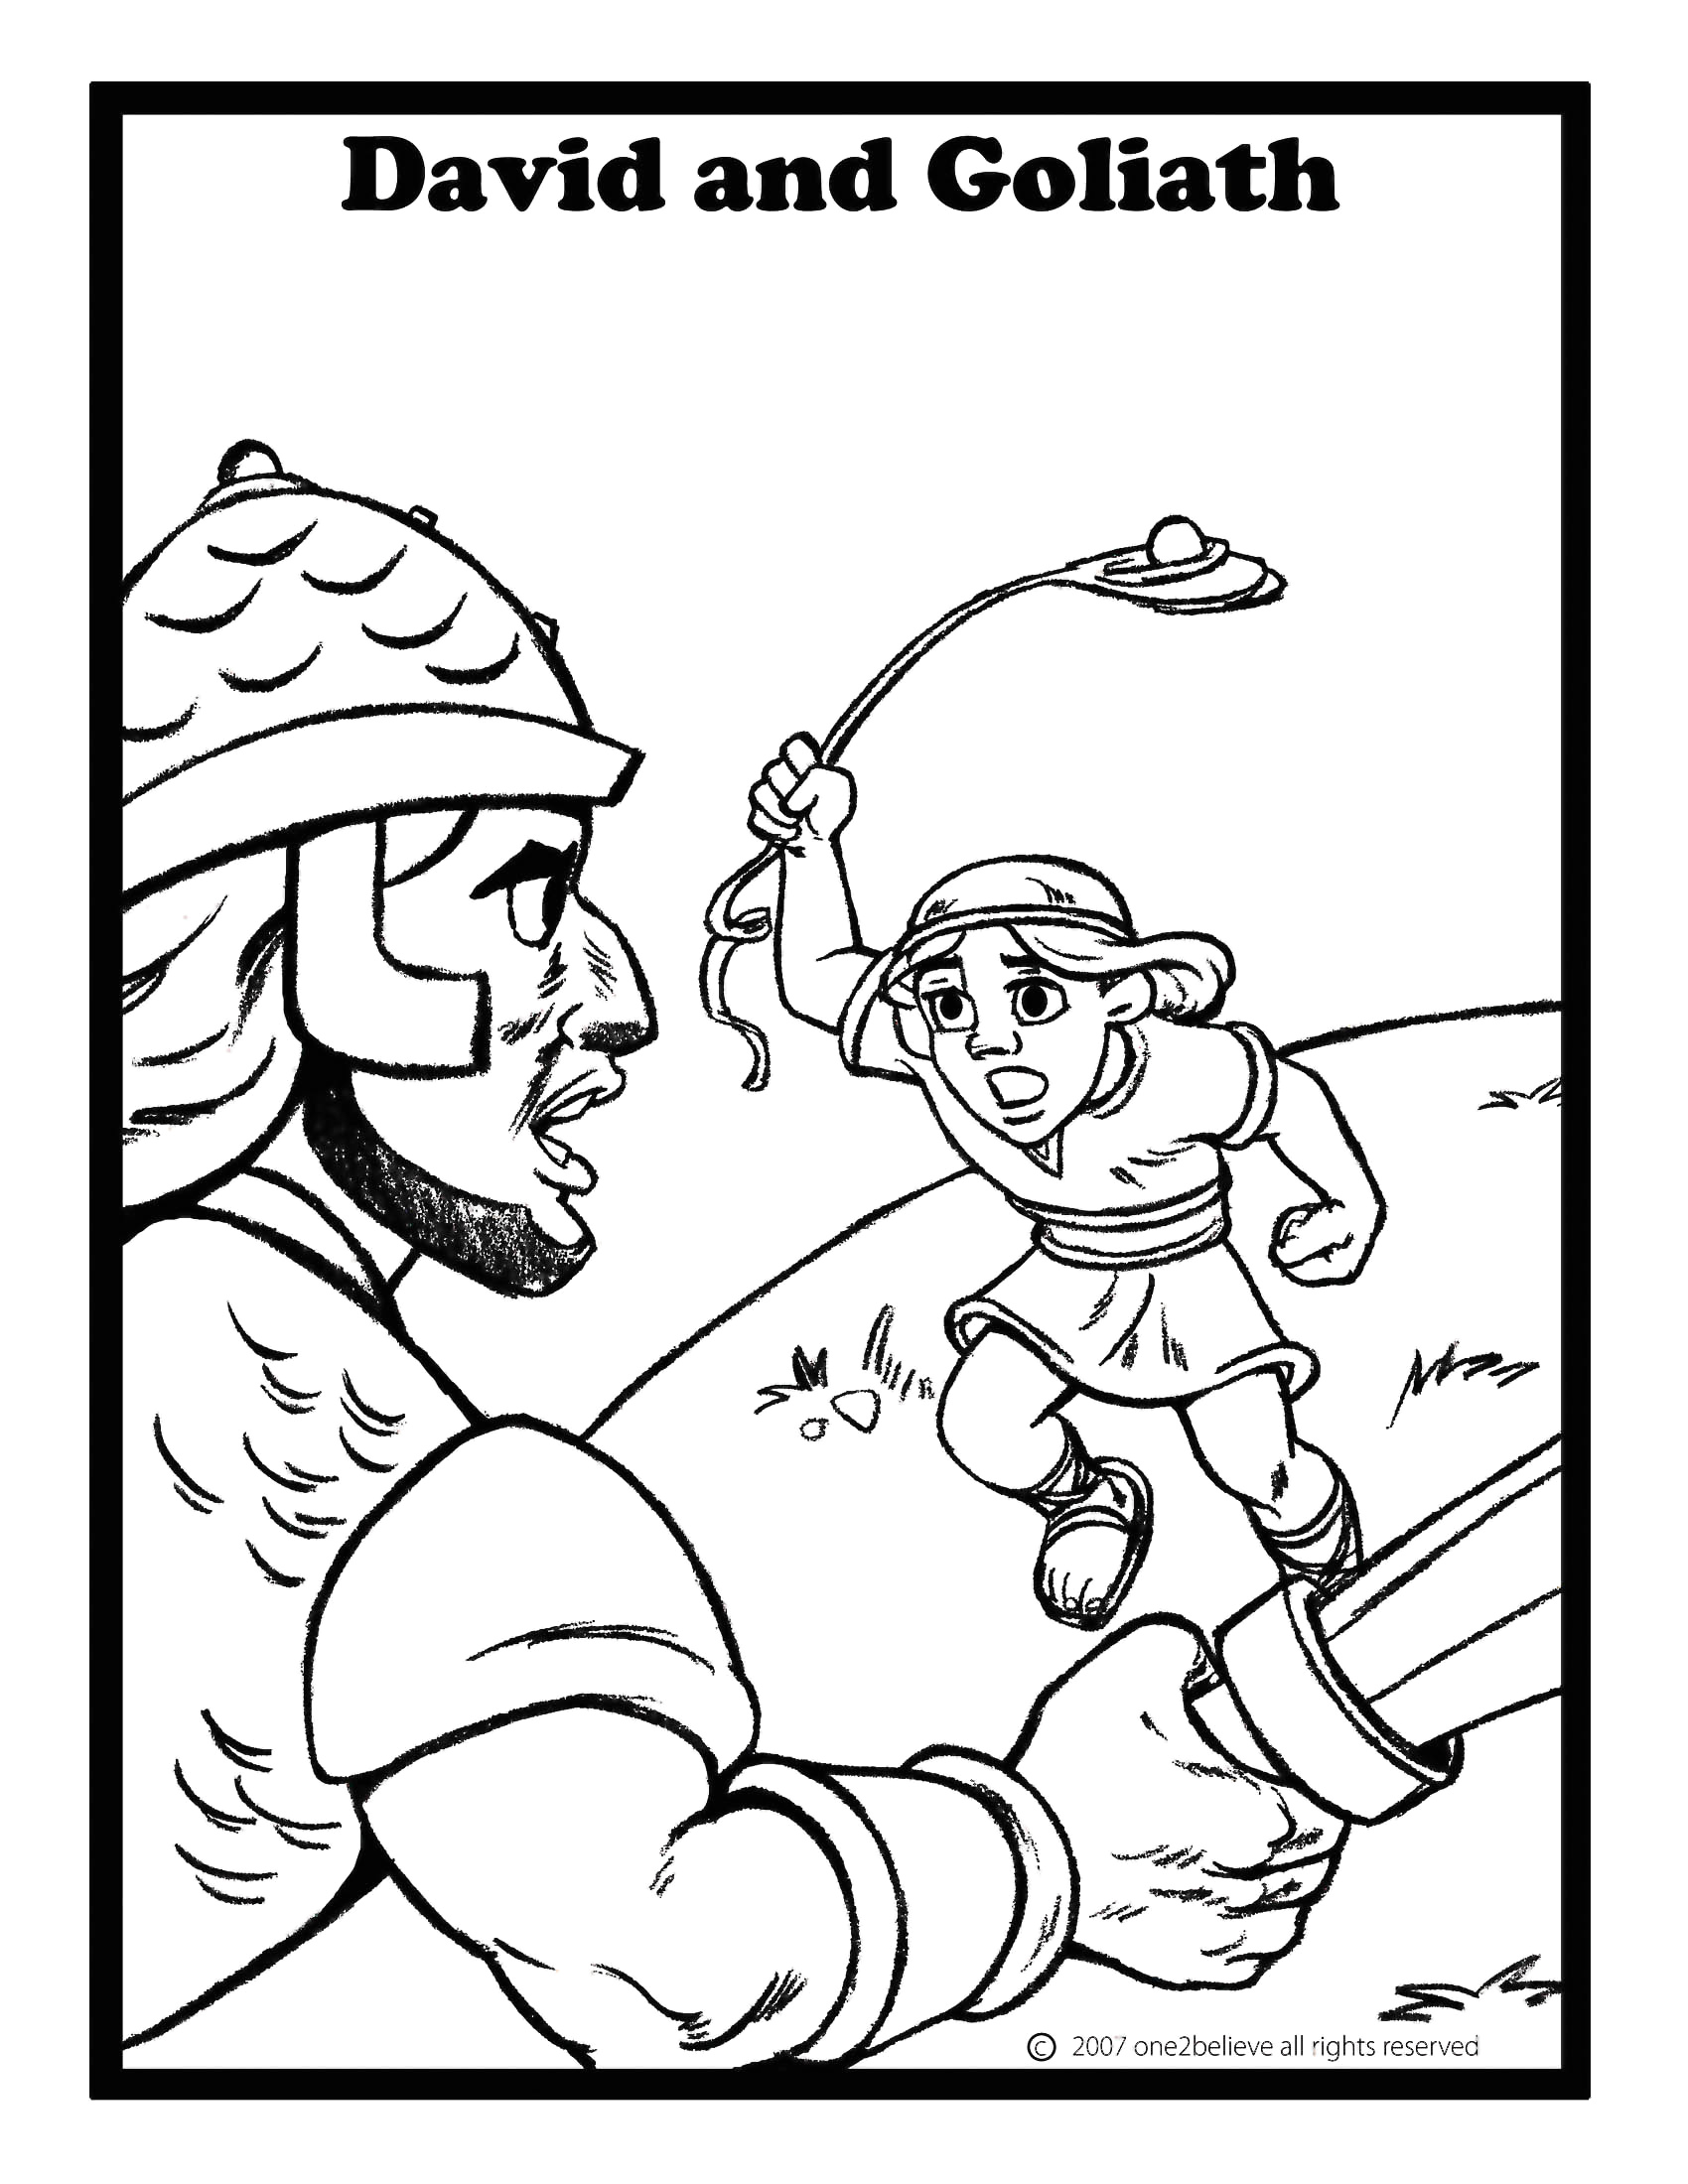 Free Bible Coloring Pages David and Goliath David and Goliath